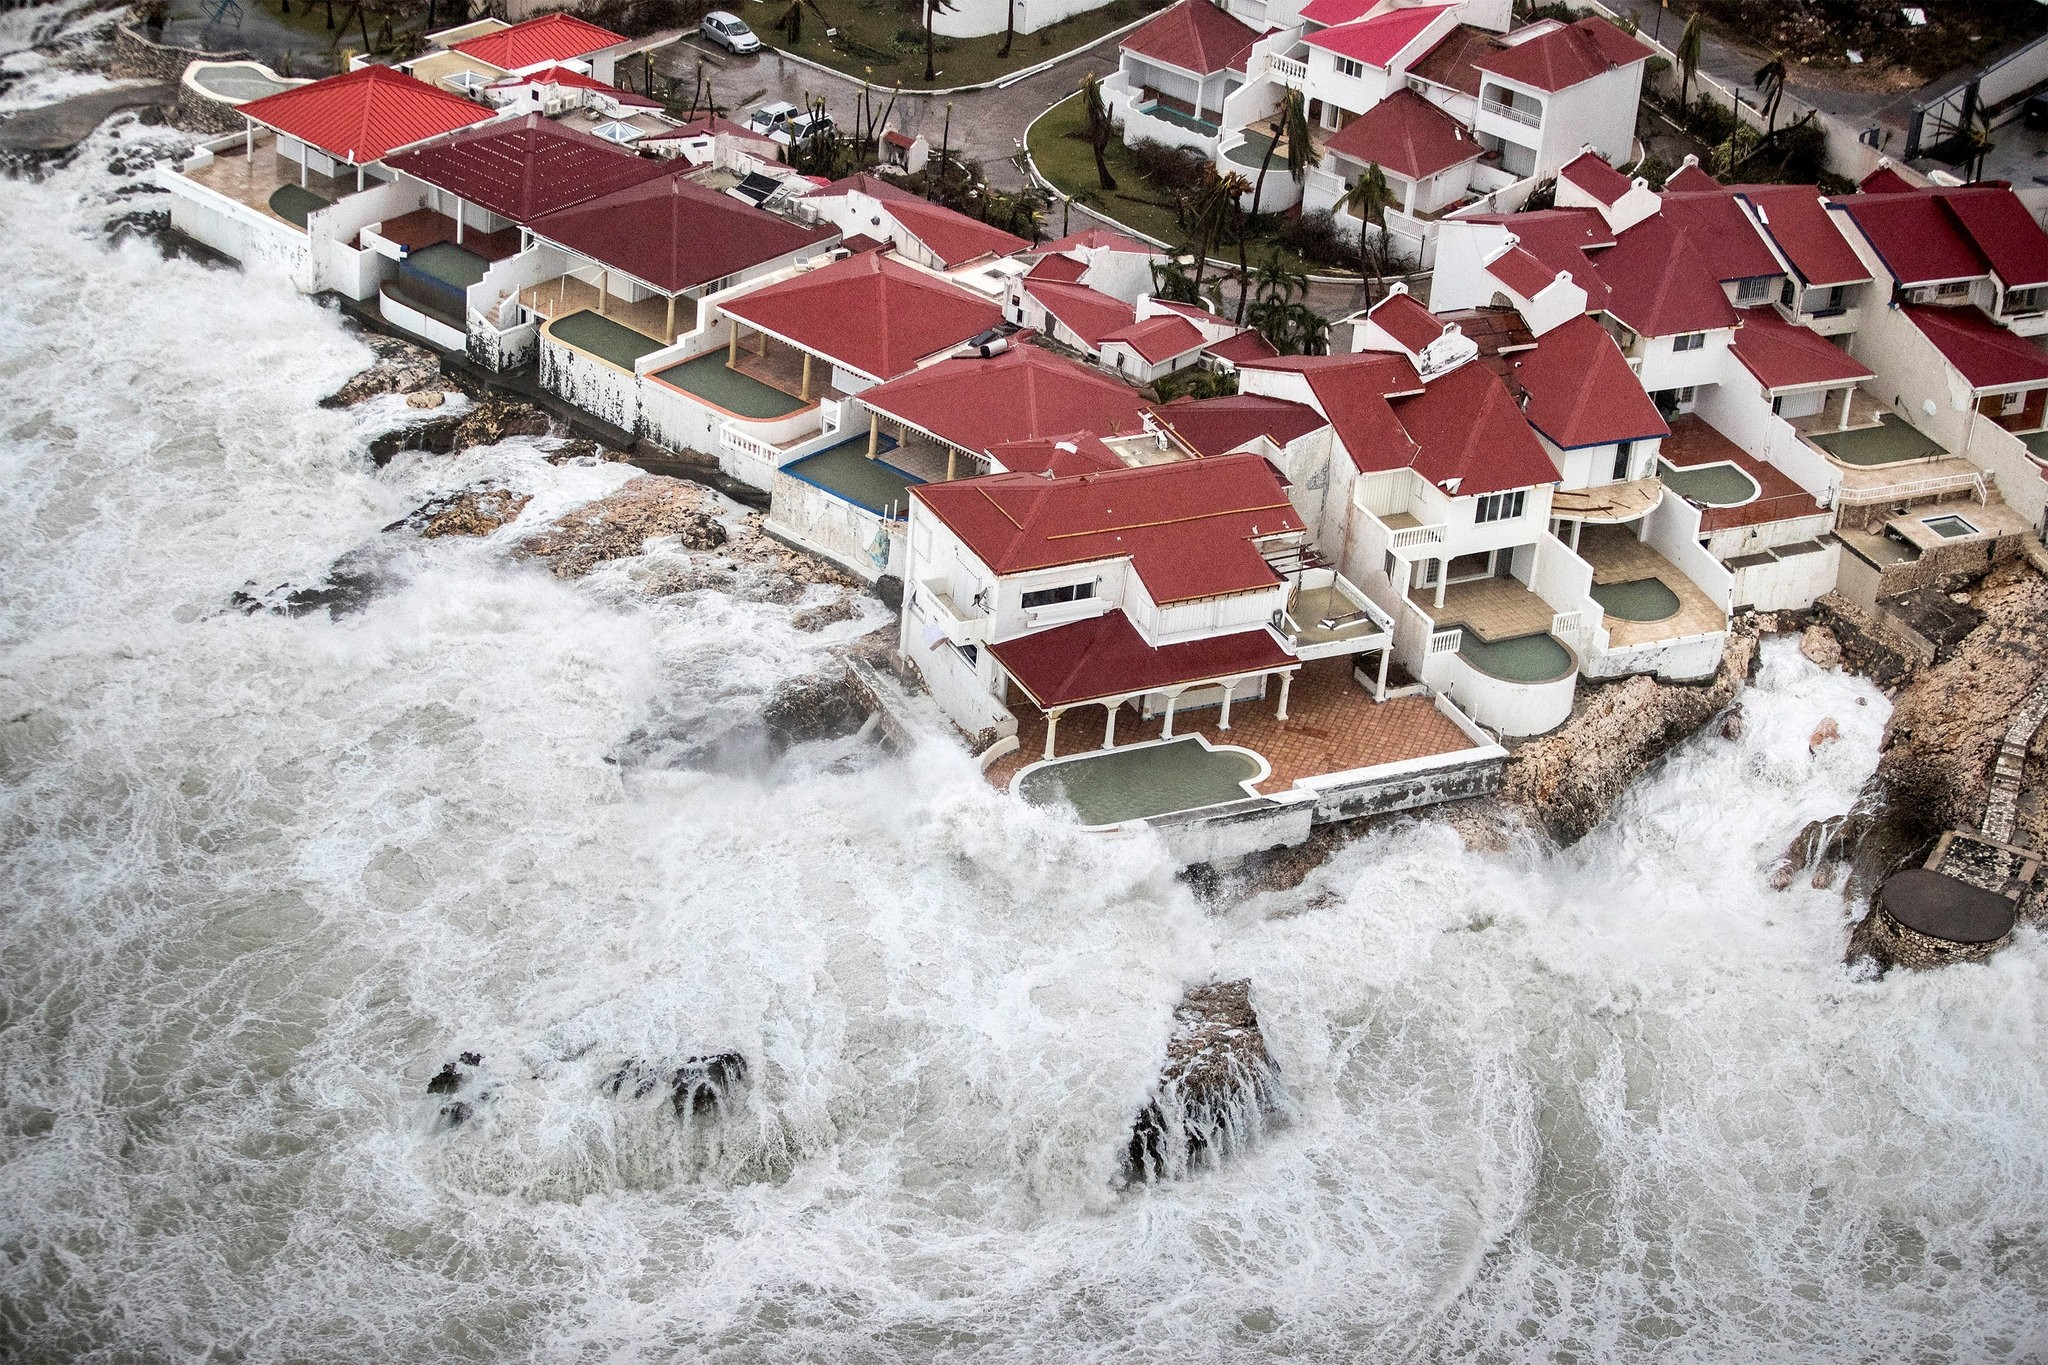 View of the aftermath of Hurricane Irma on Sint Maarten Dutch part of Saint Martin island in the Caribbean September 6, 2017. (REUTERS Photo)